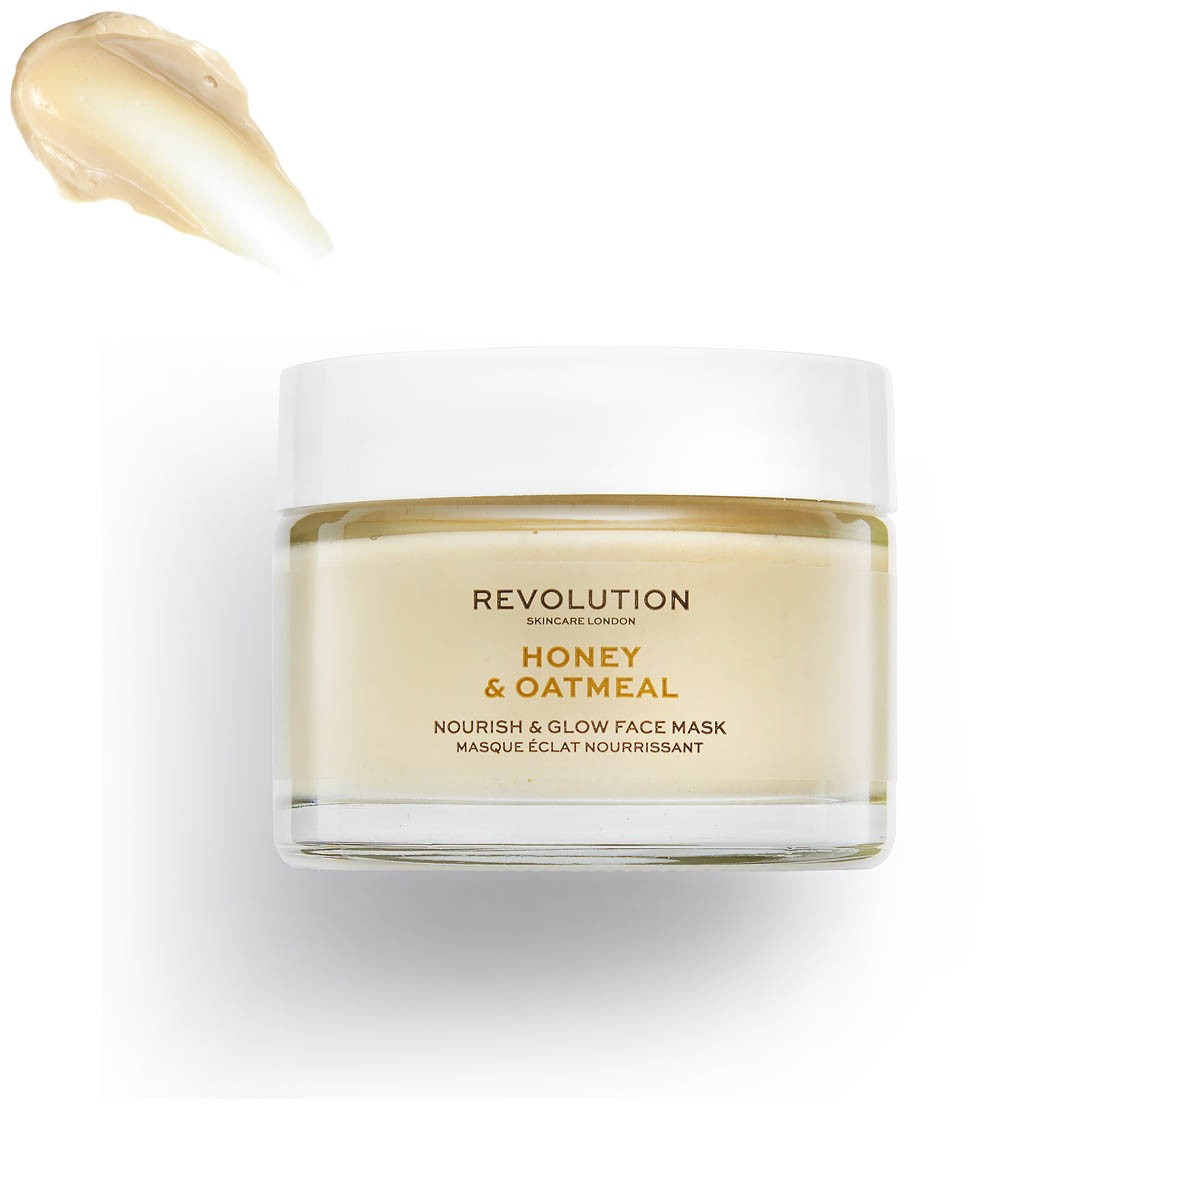 Gesichtsmaske - Honey & Oatmeal Nourish & Glow Face Mask